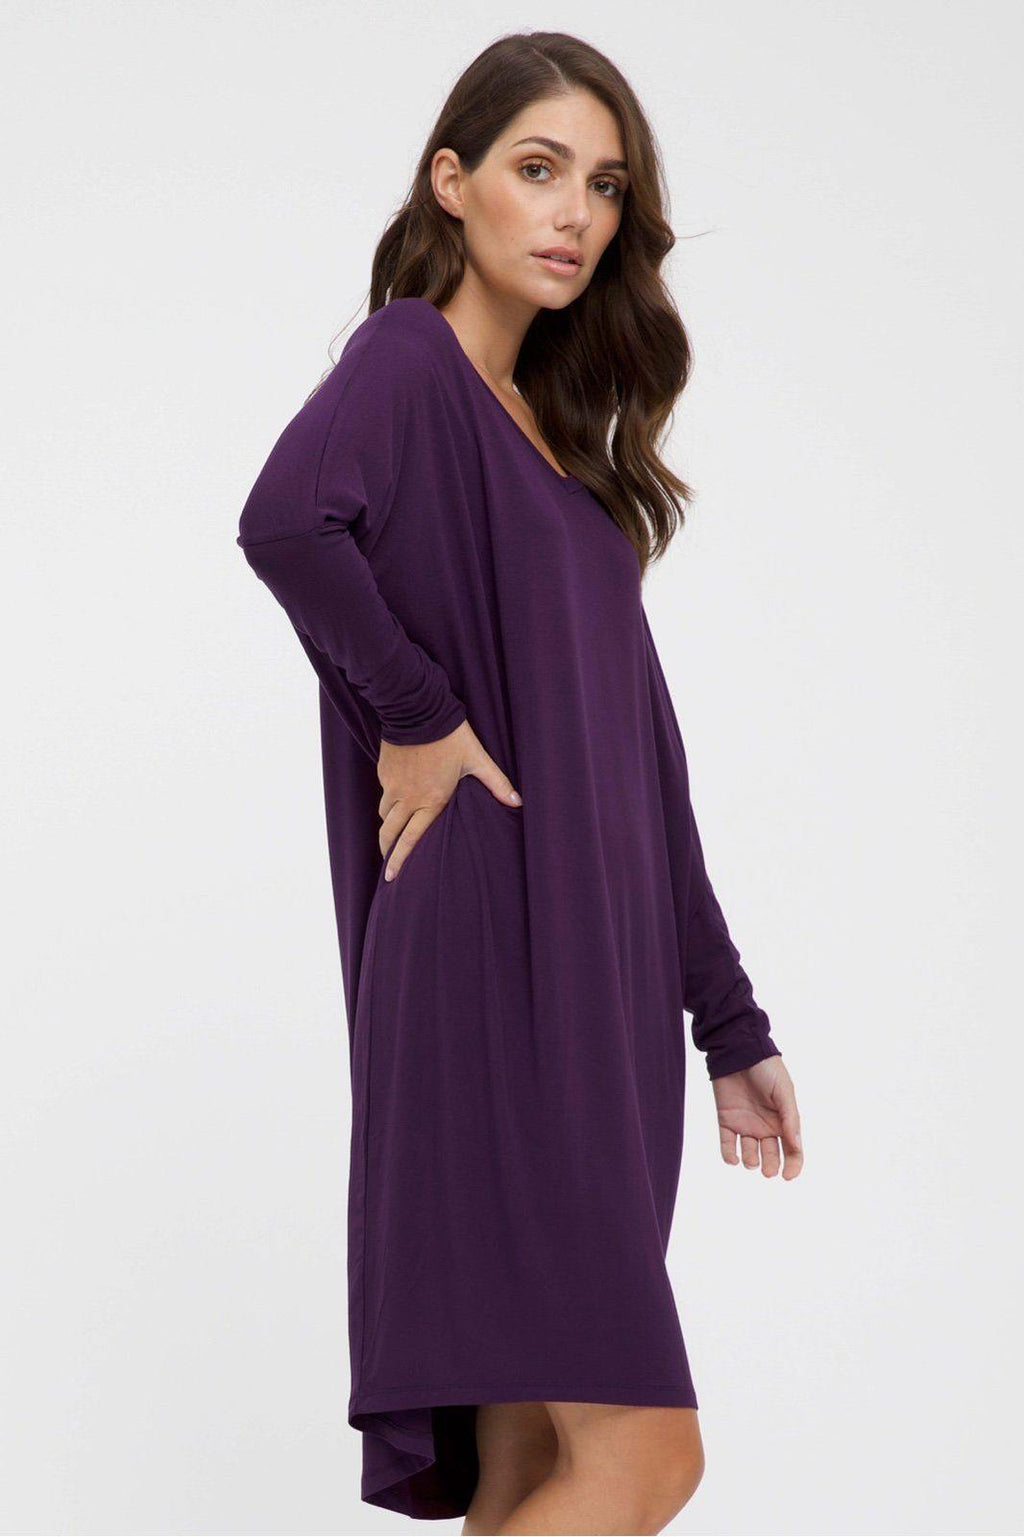 Bamboo Body Caz Dress - Plum | Buy Online at Weekends